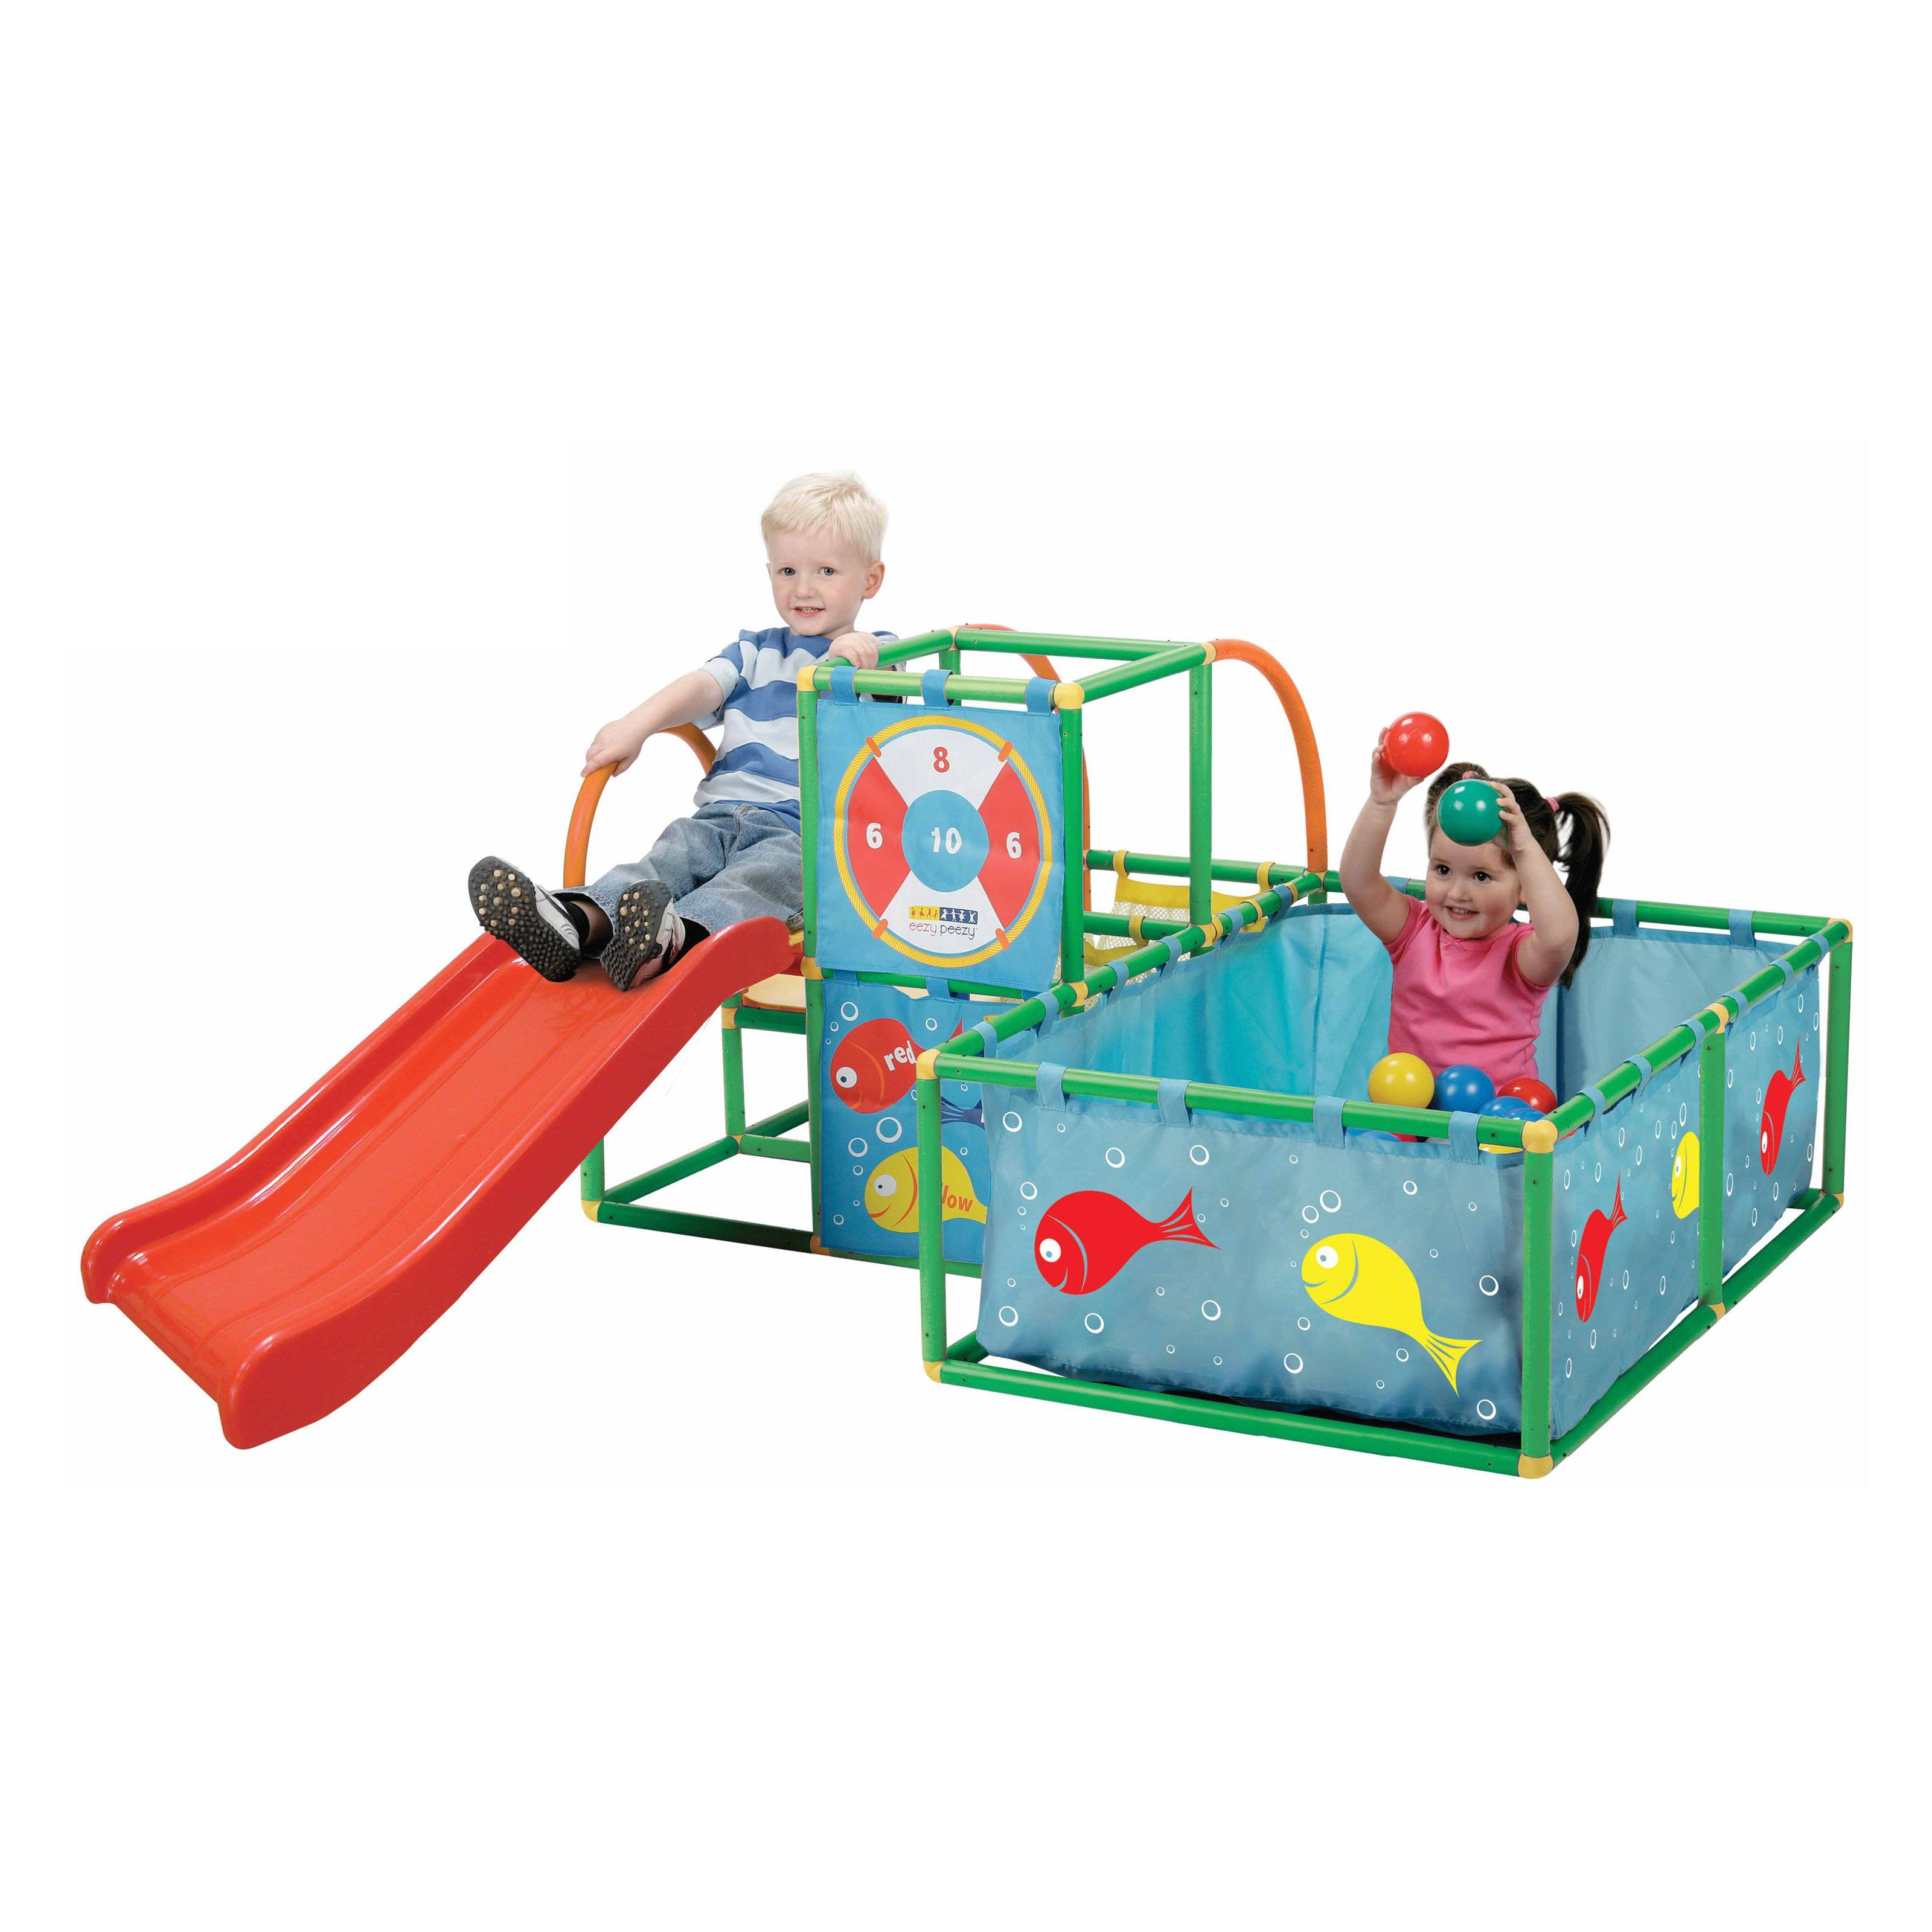 Active Play Gym Set   Playroom   Toddler Toys, Outdoor Toys For Kids